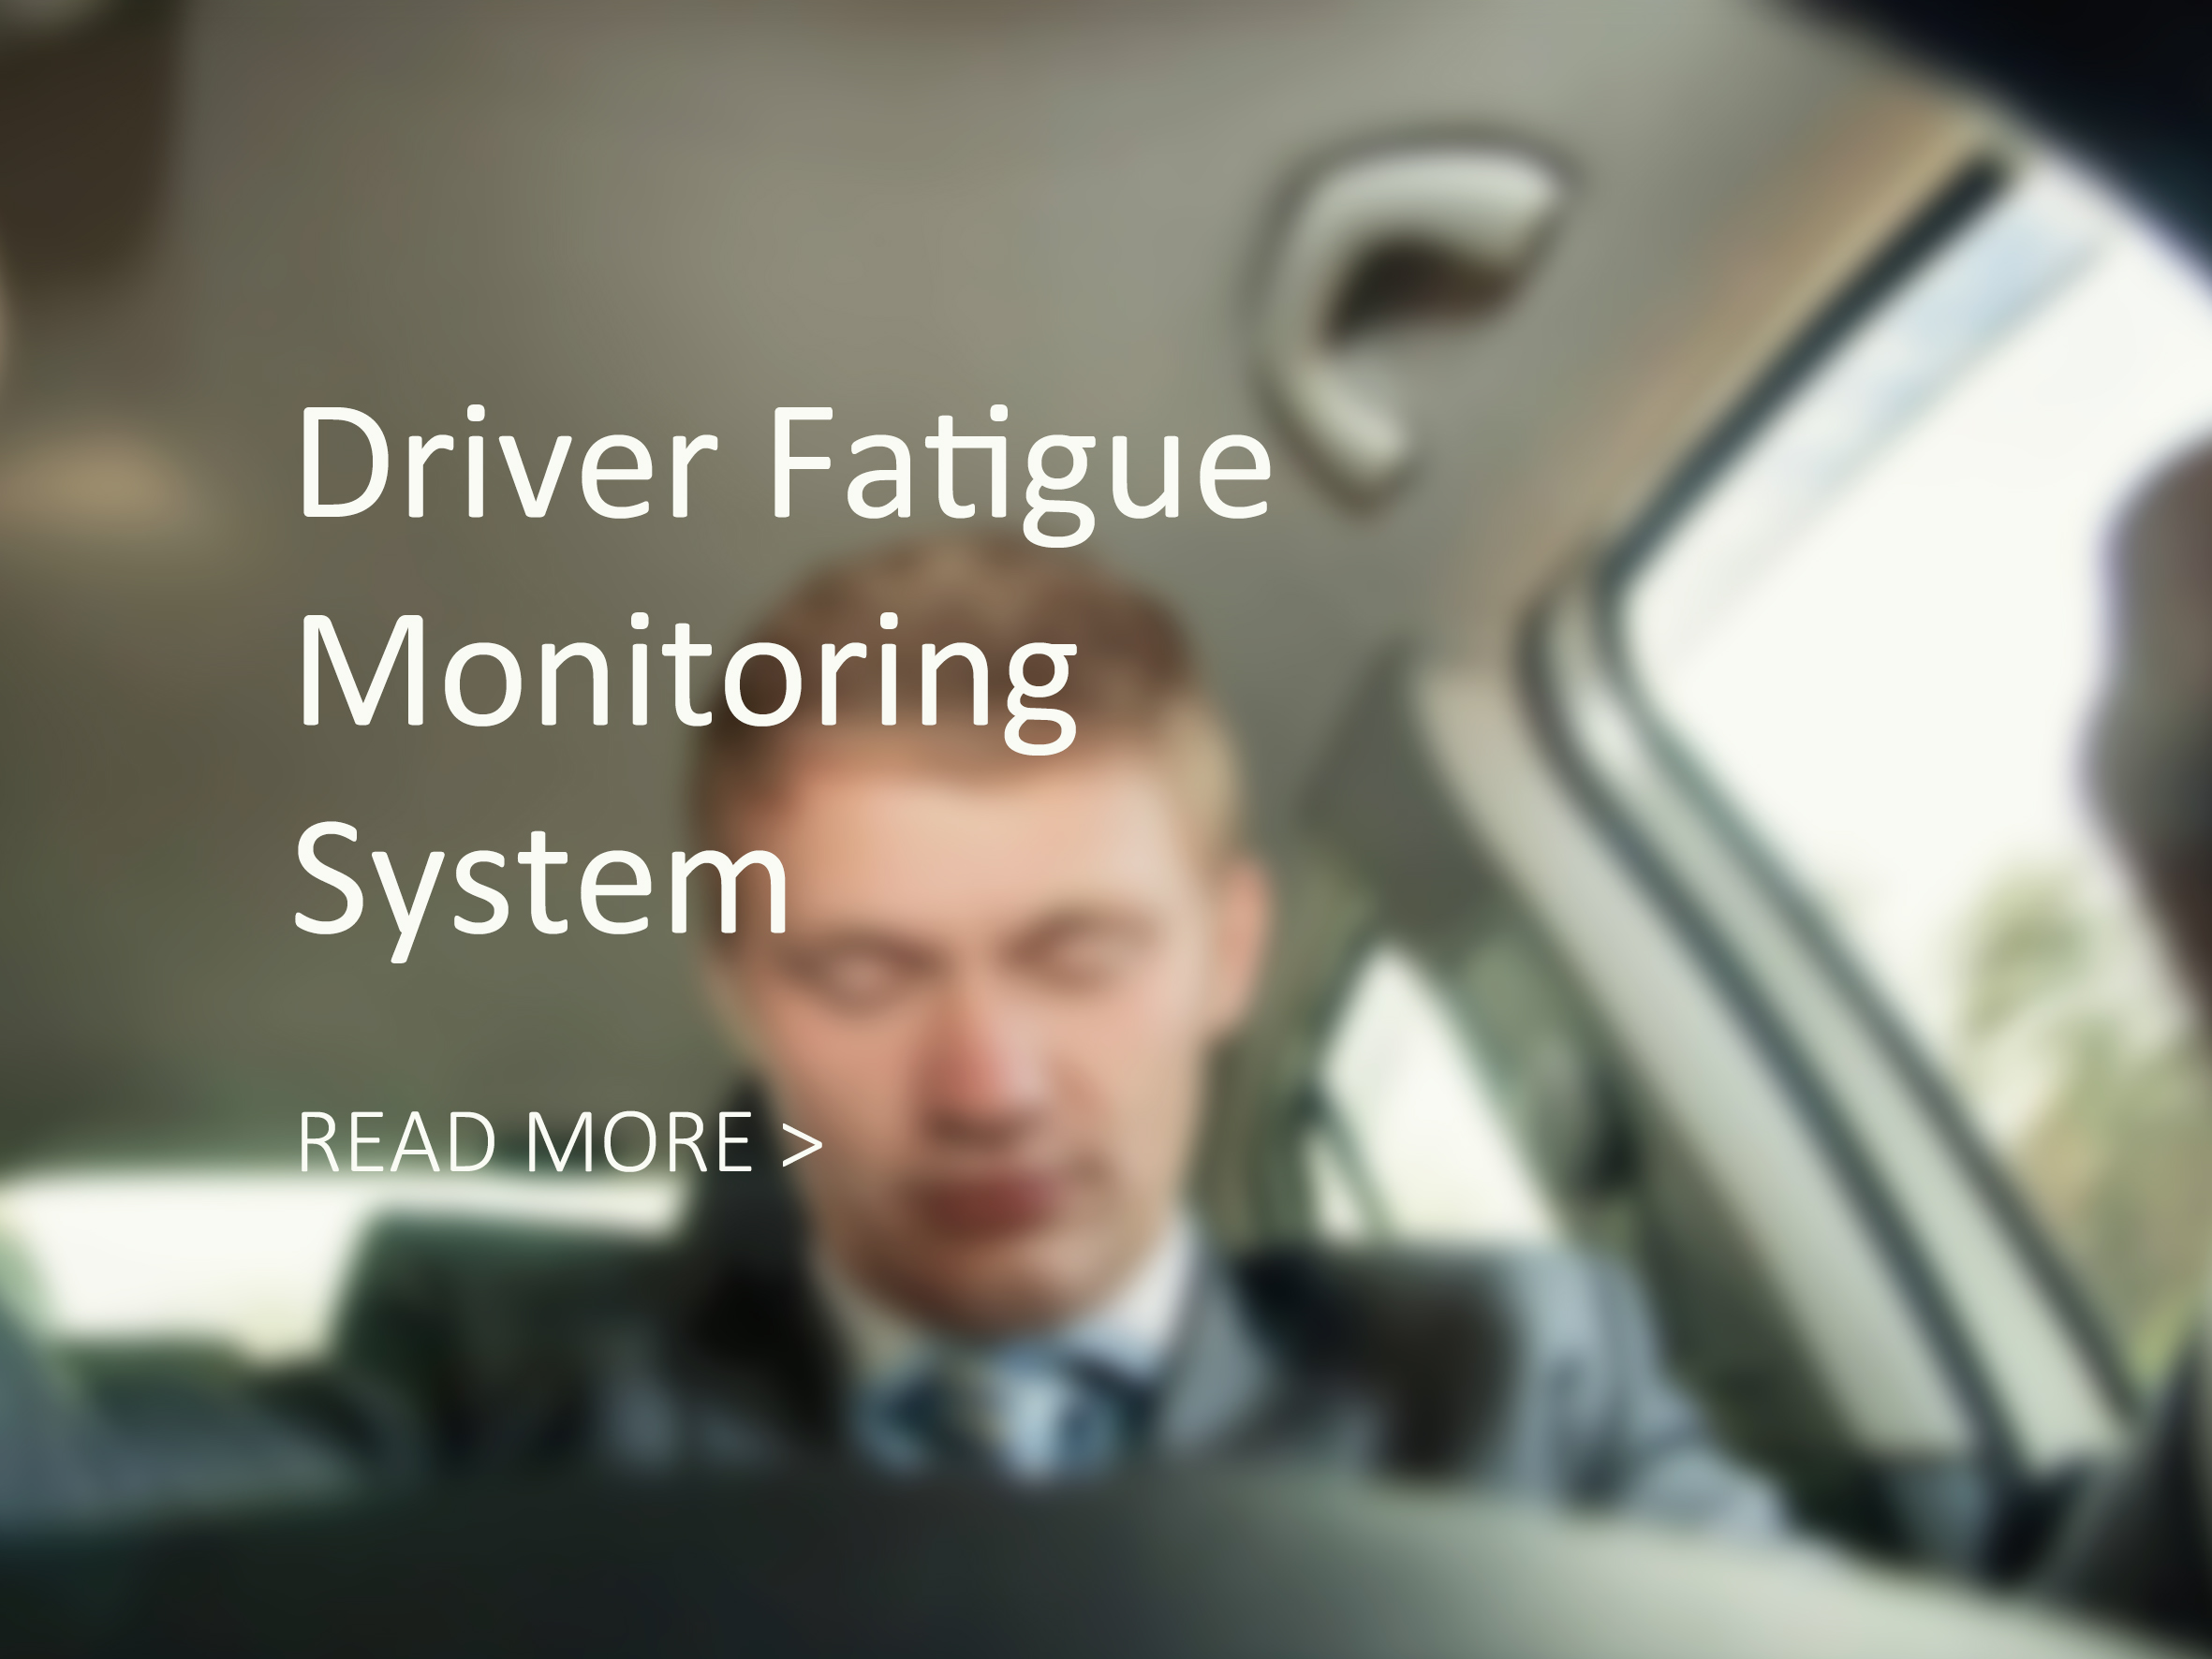 driver fatigue monitoring system